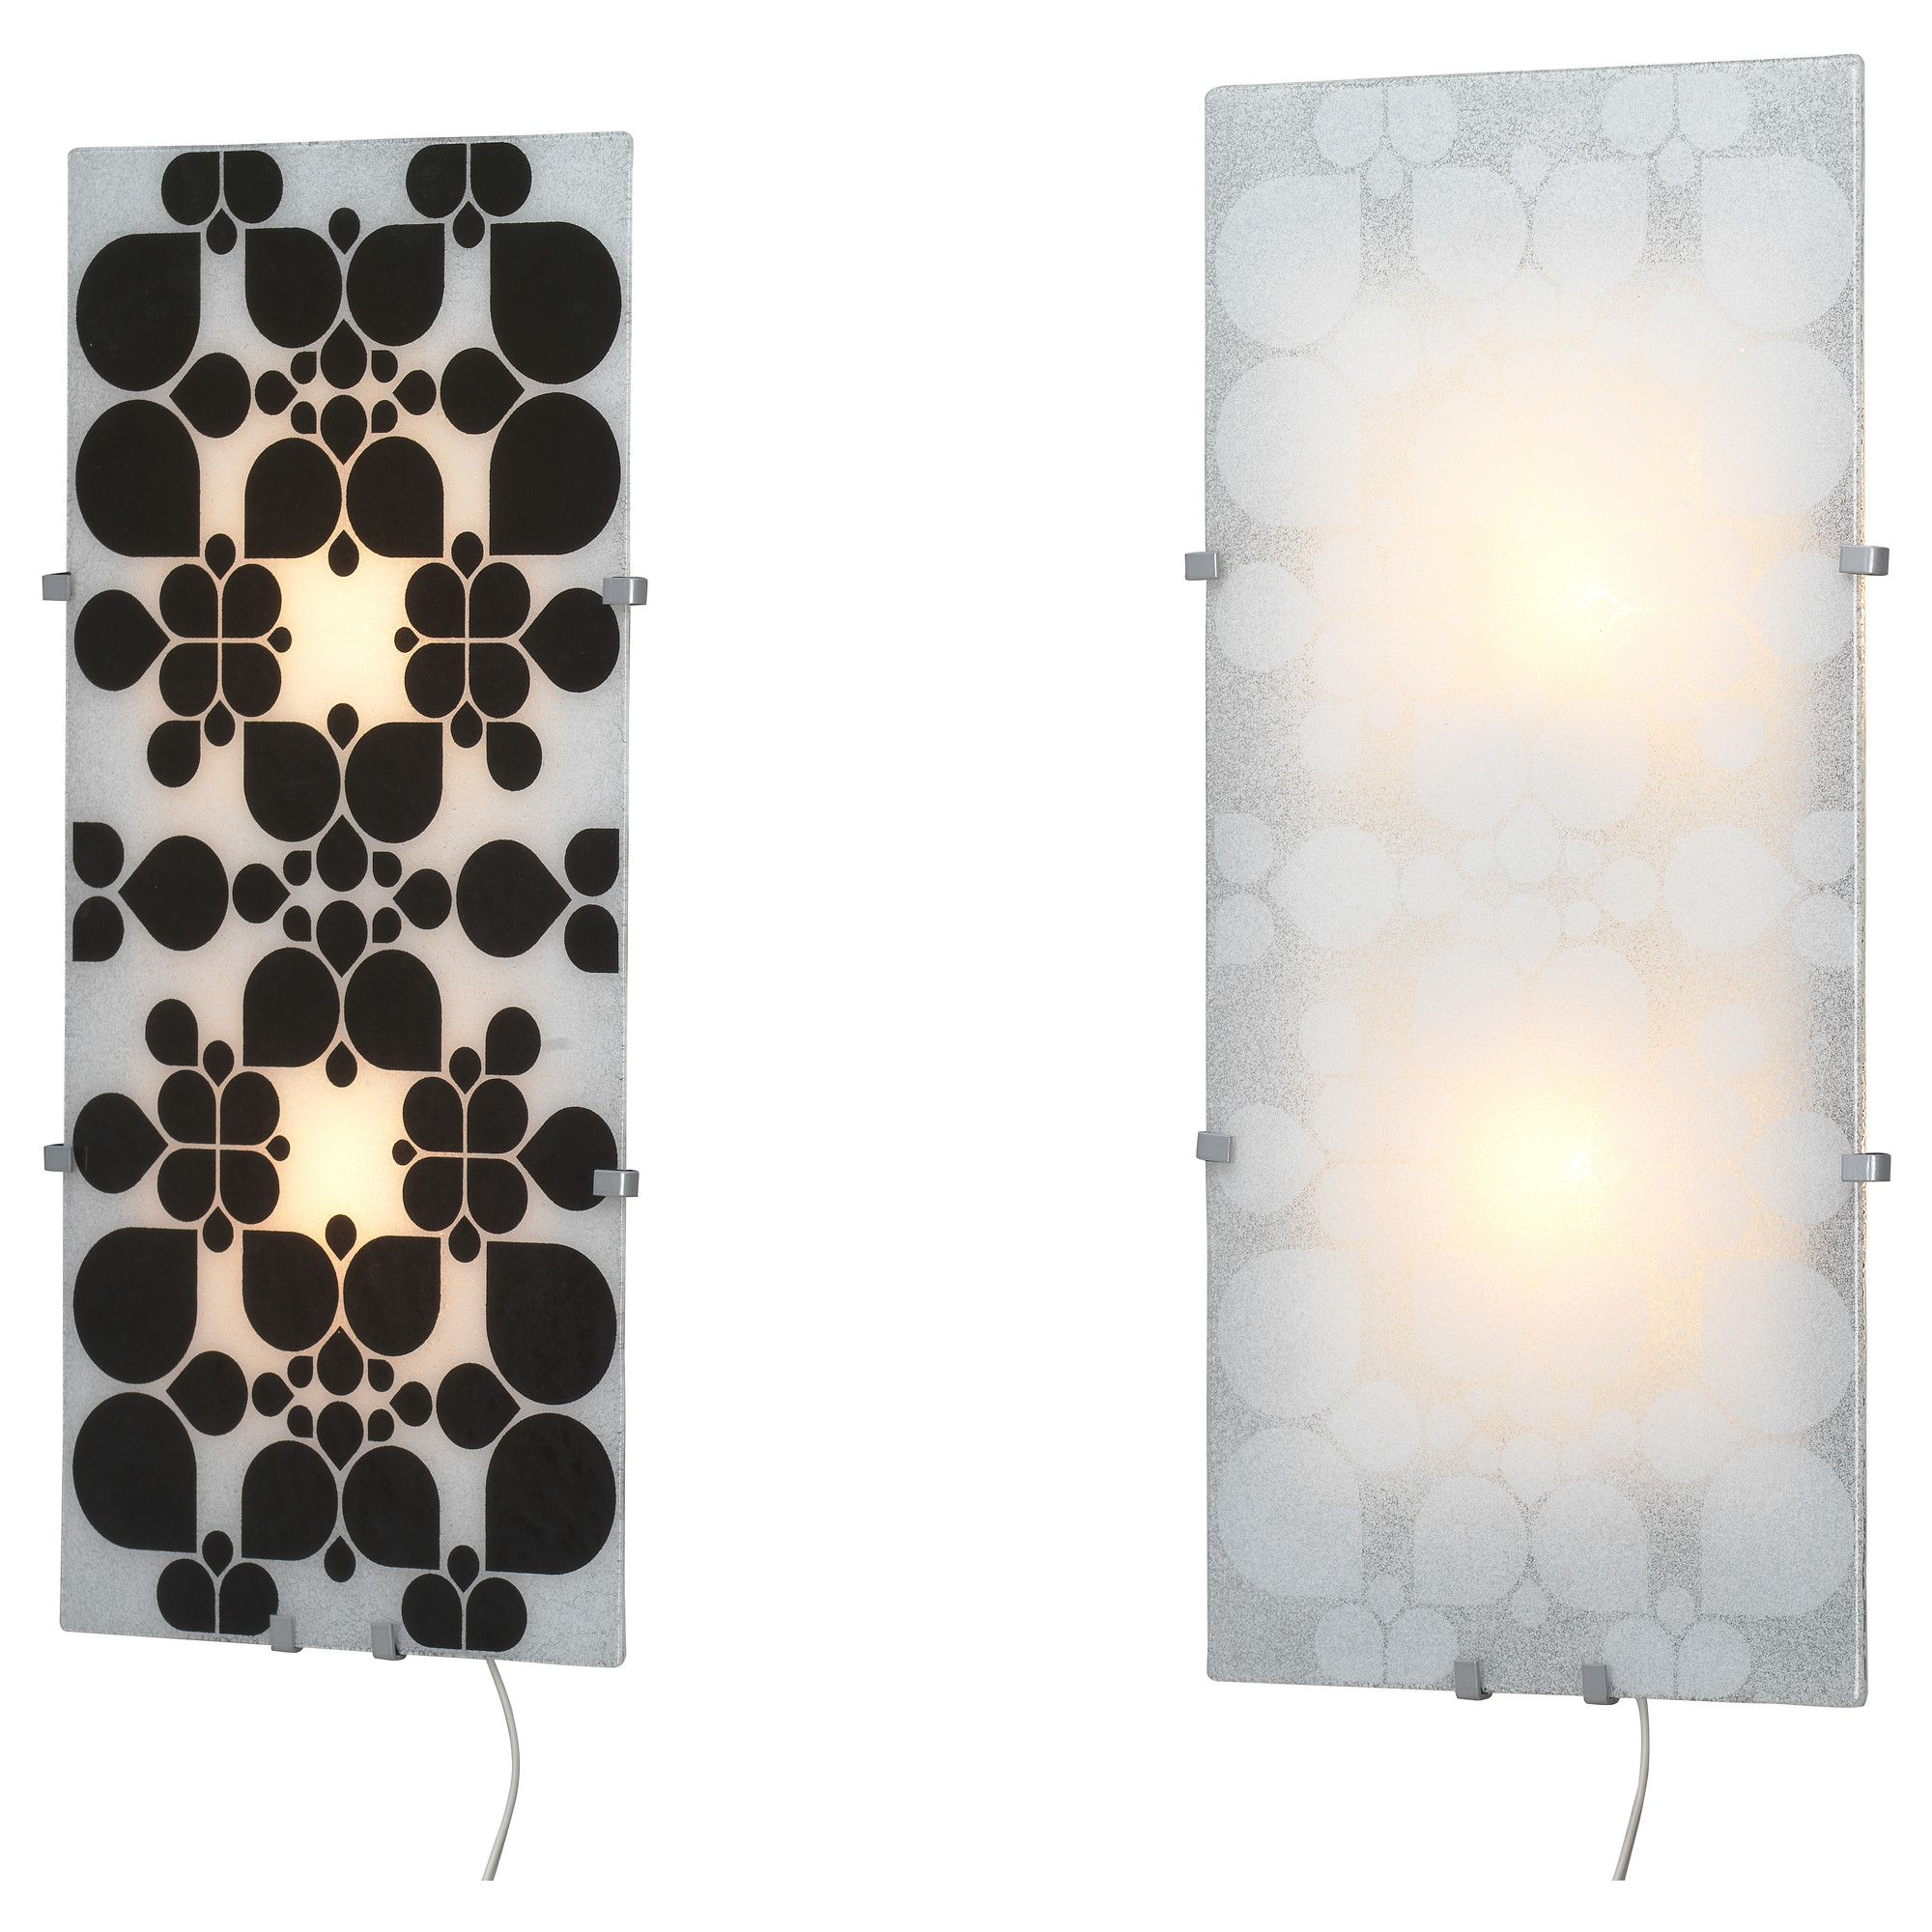 Gyllen panel ikea for my home in w pinterest light panel gyllen panel ikea available in other patterns and colors easy to change the look of your home by changing panels mozeypictures Gallery